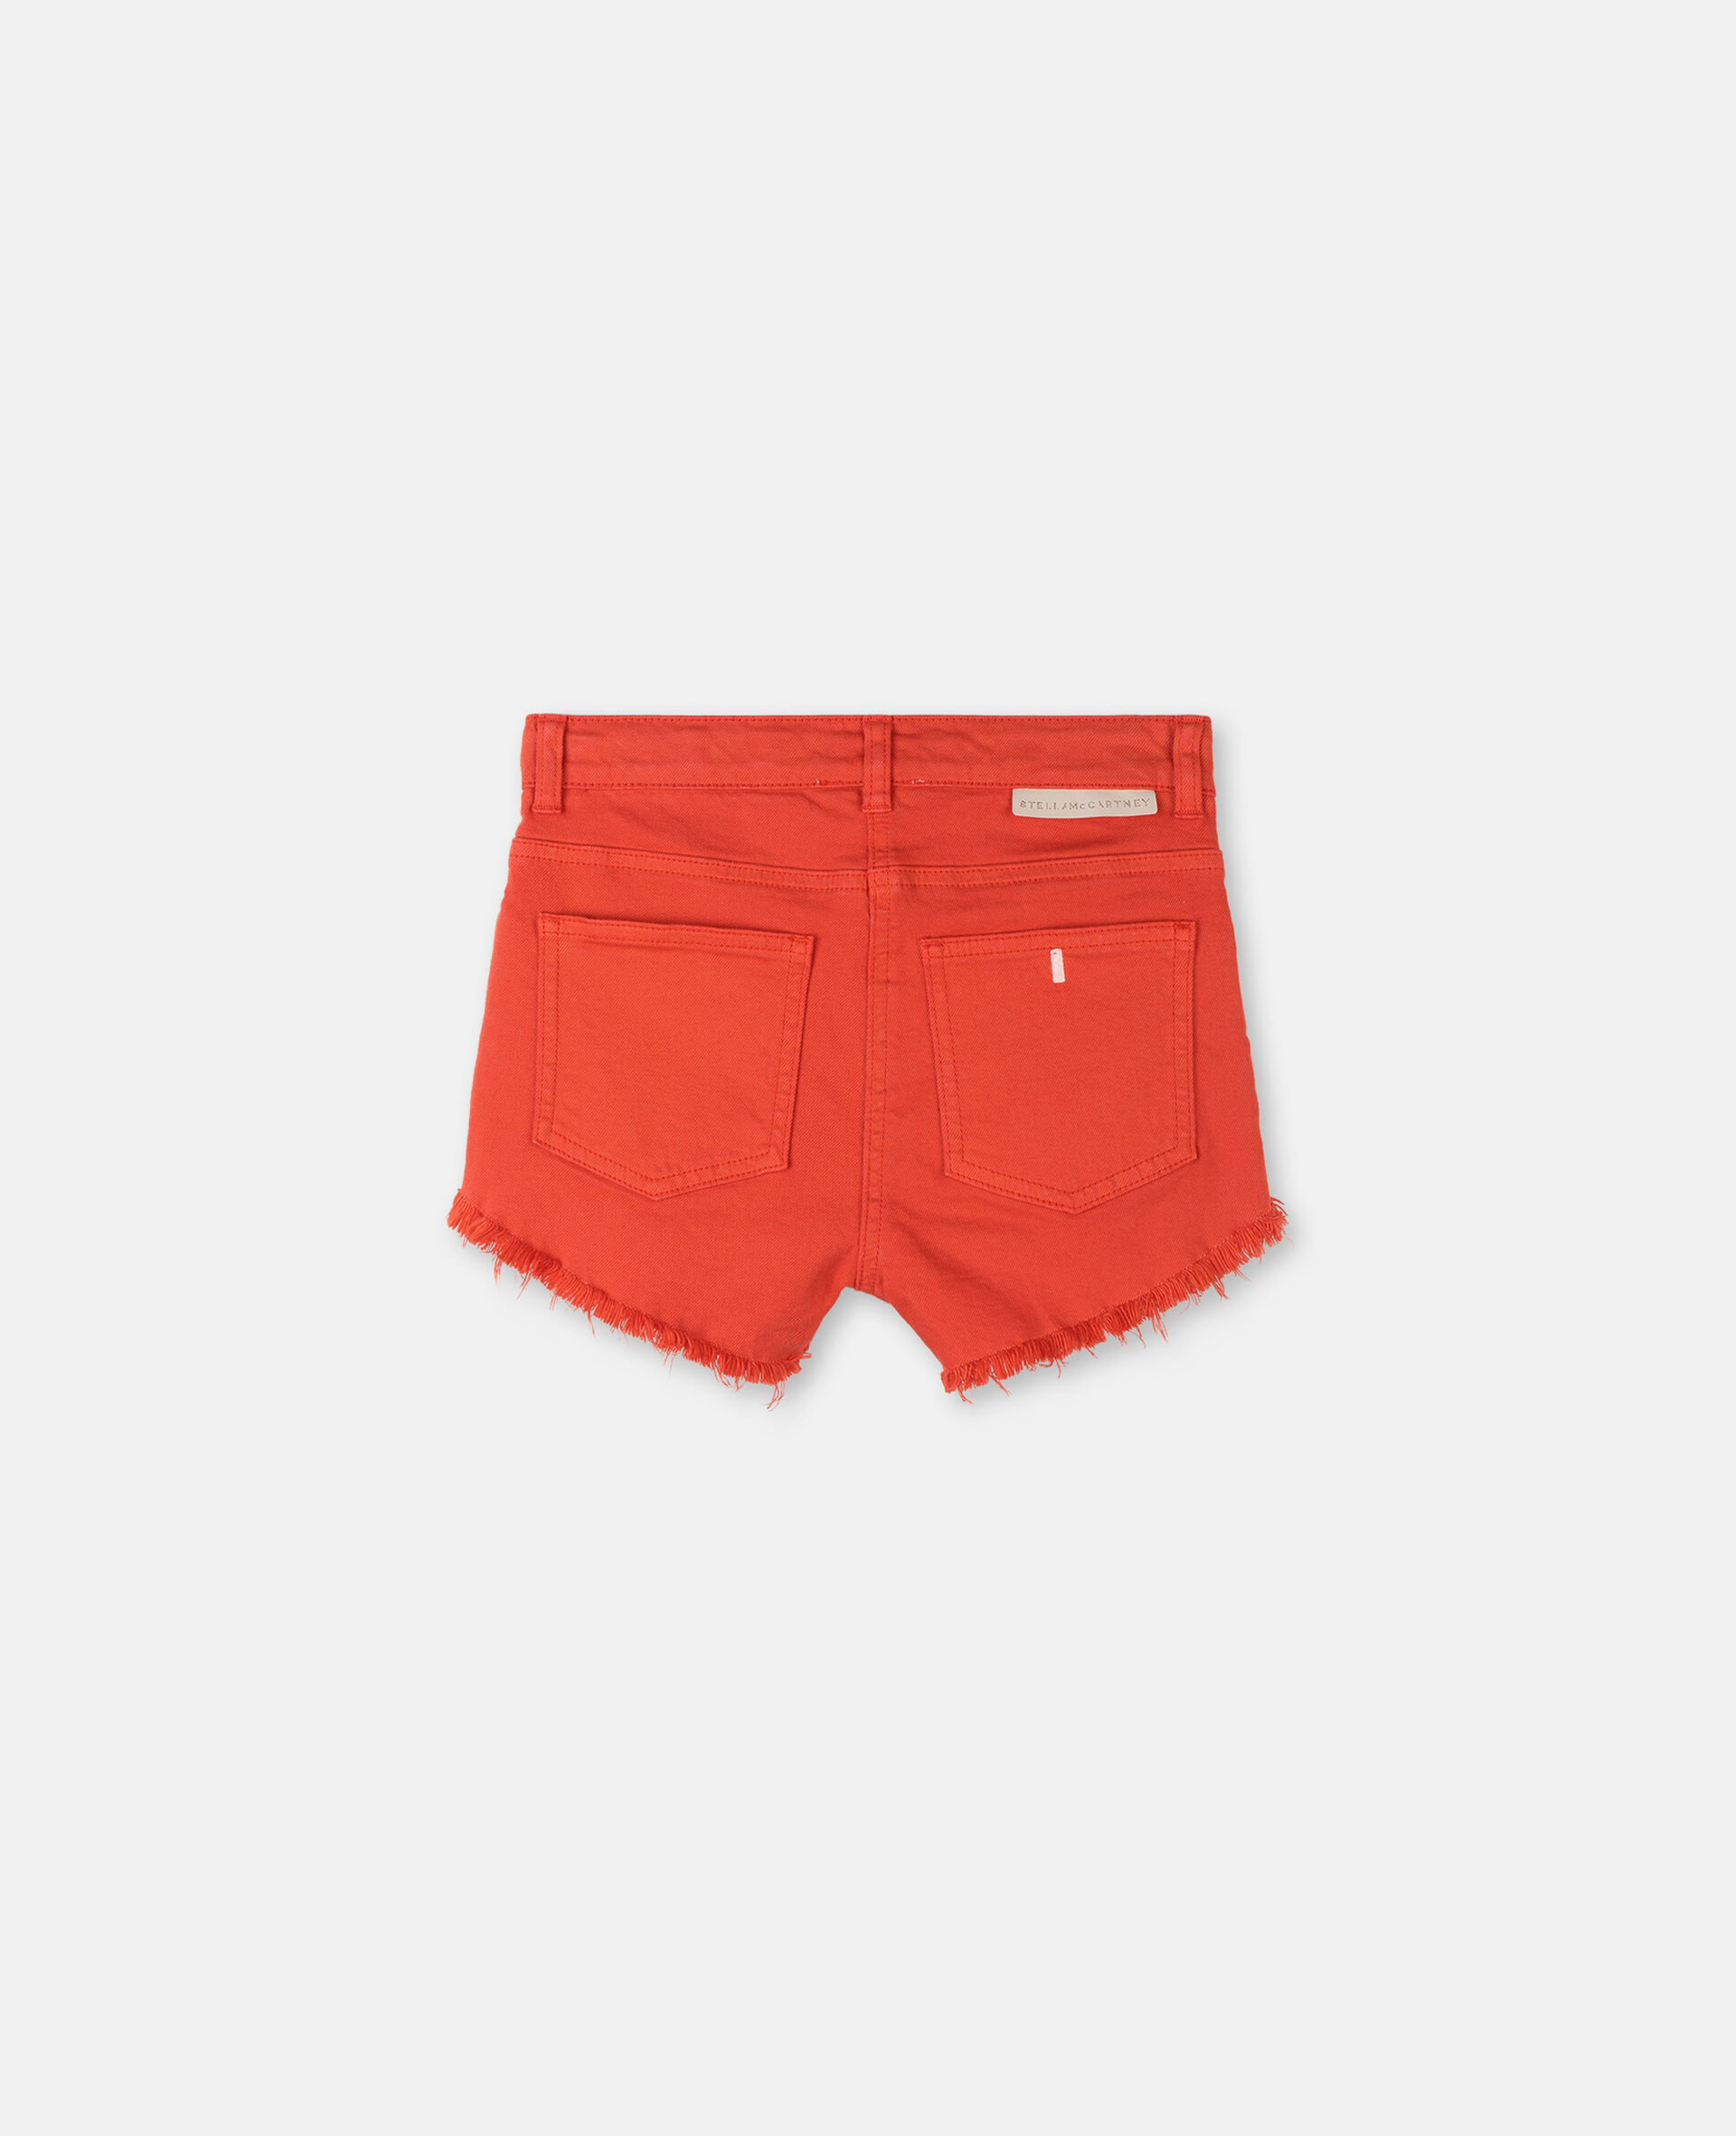 Denim Red Shorts -Red-large image number 3